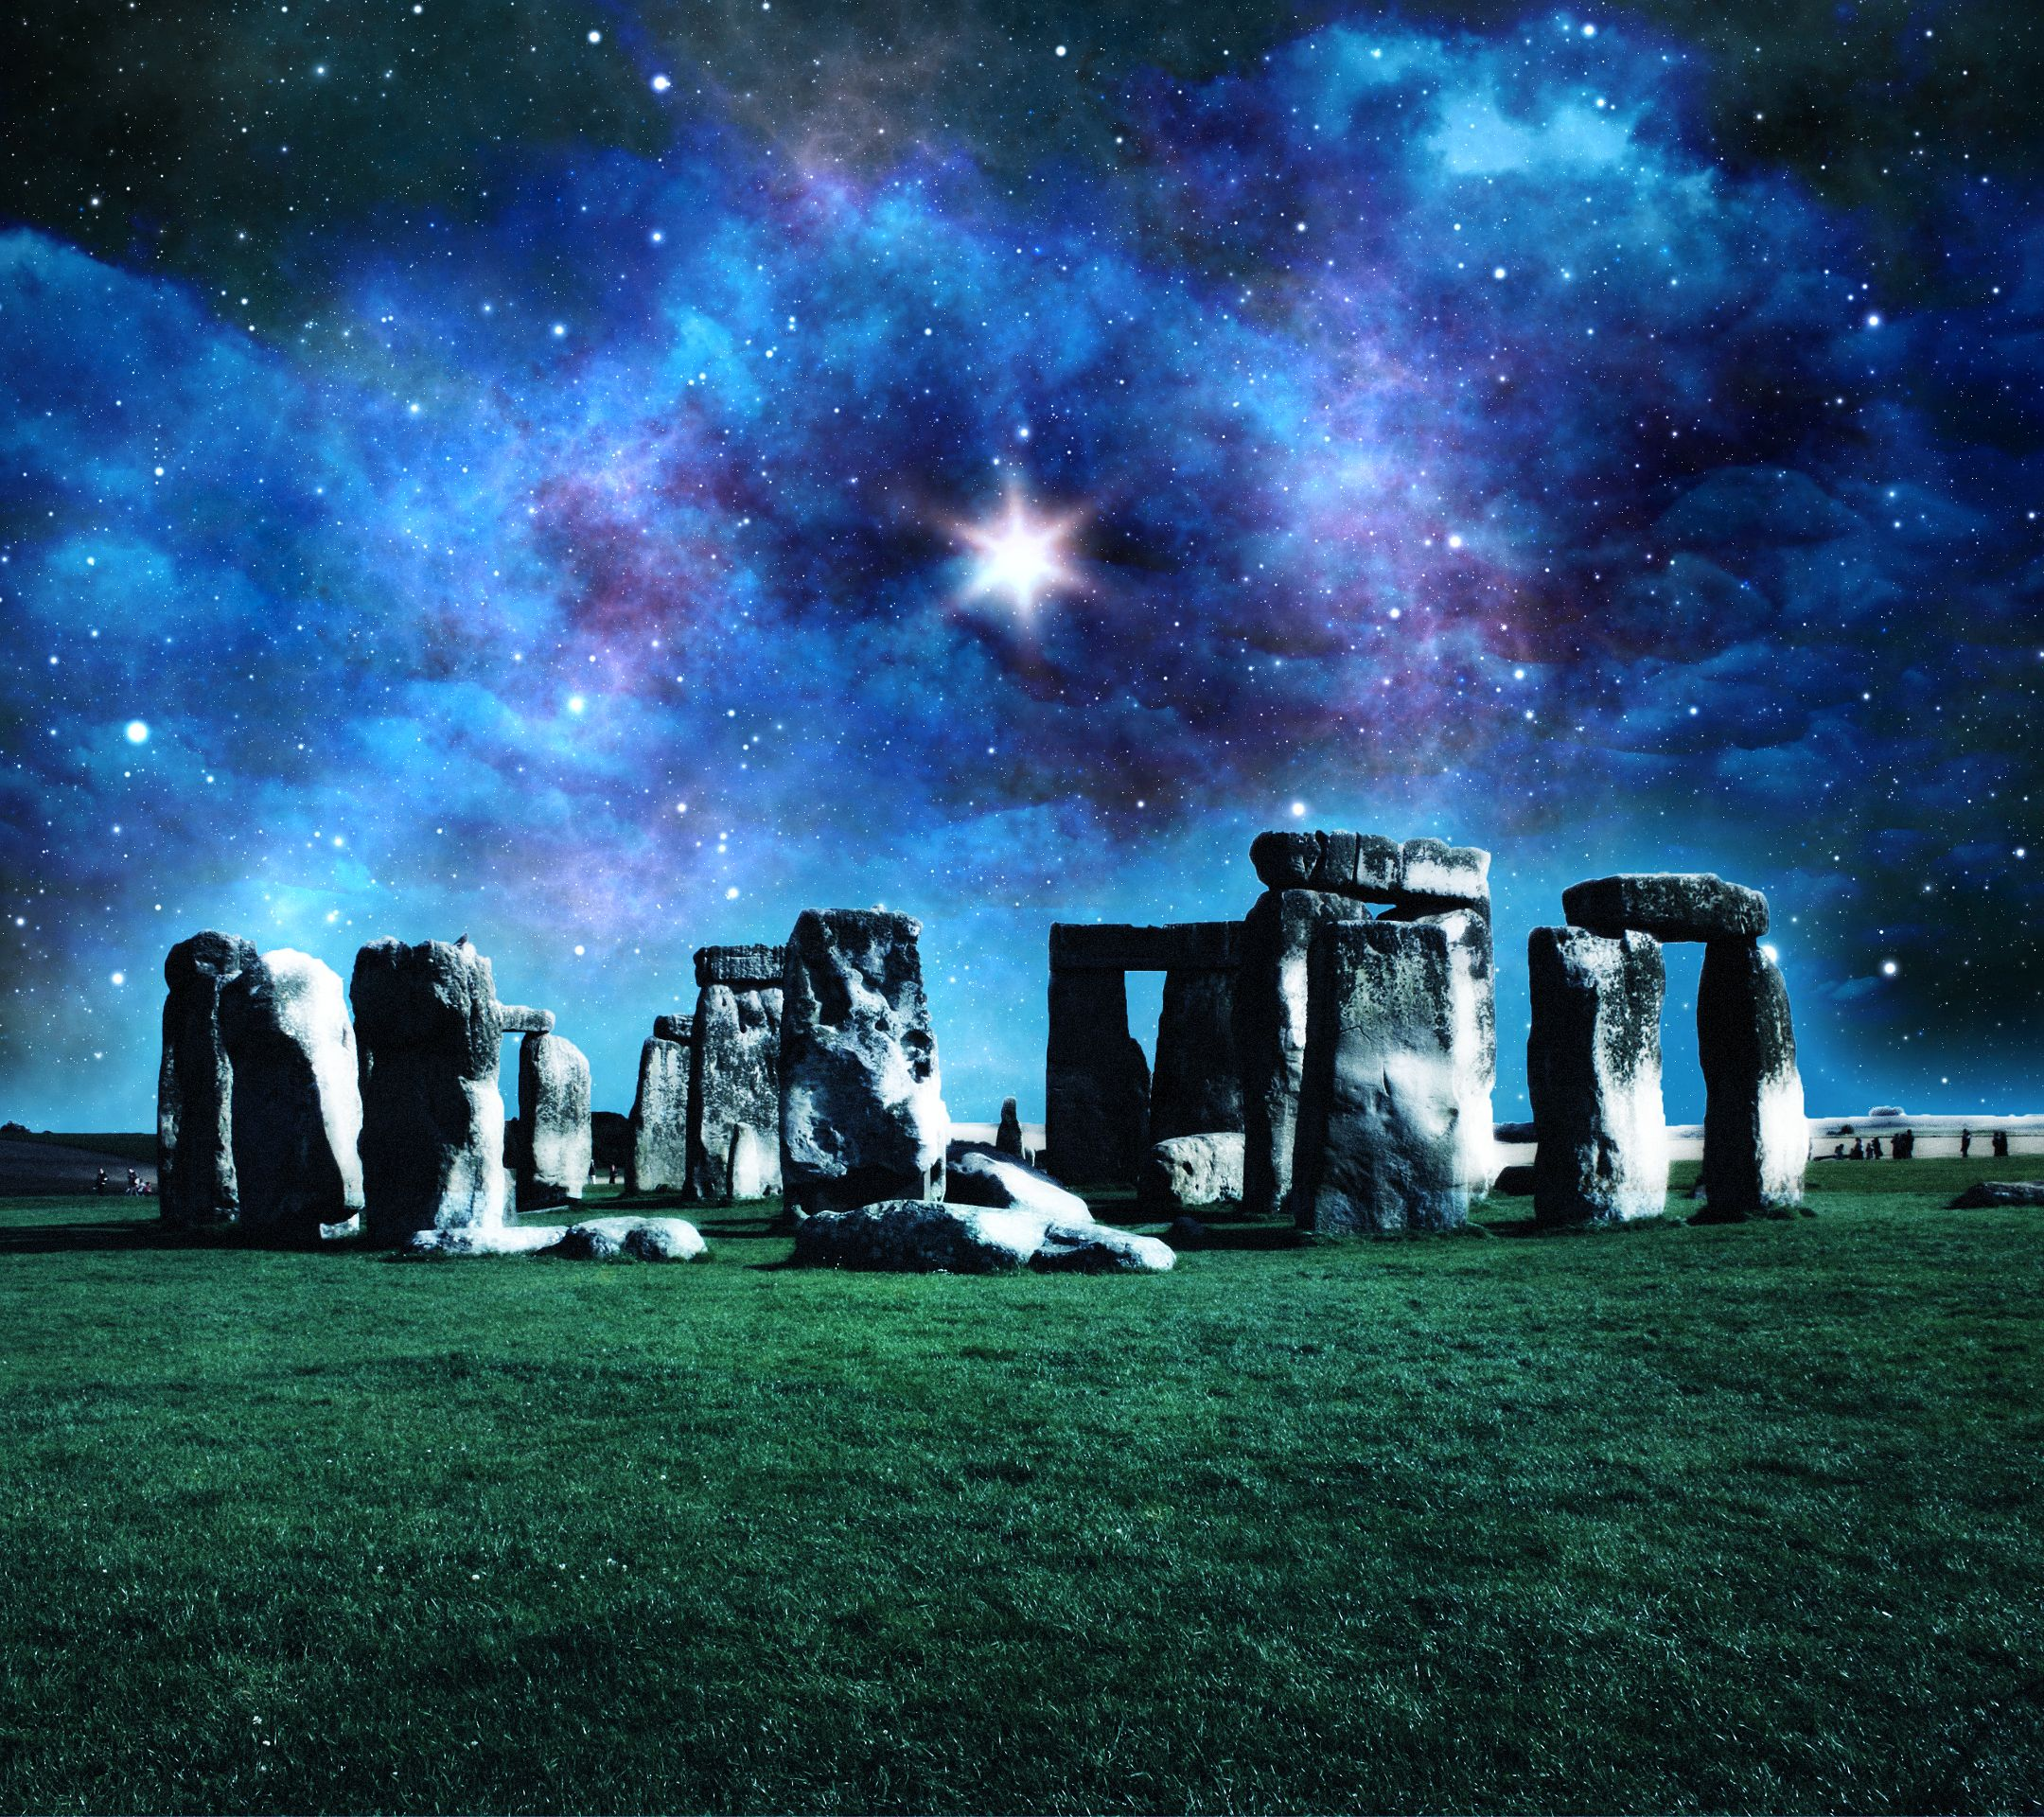 stonehenge galaxy space android wallpaper mobile9